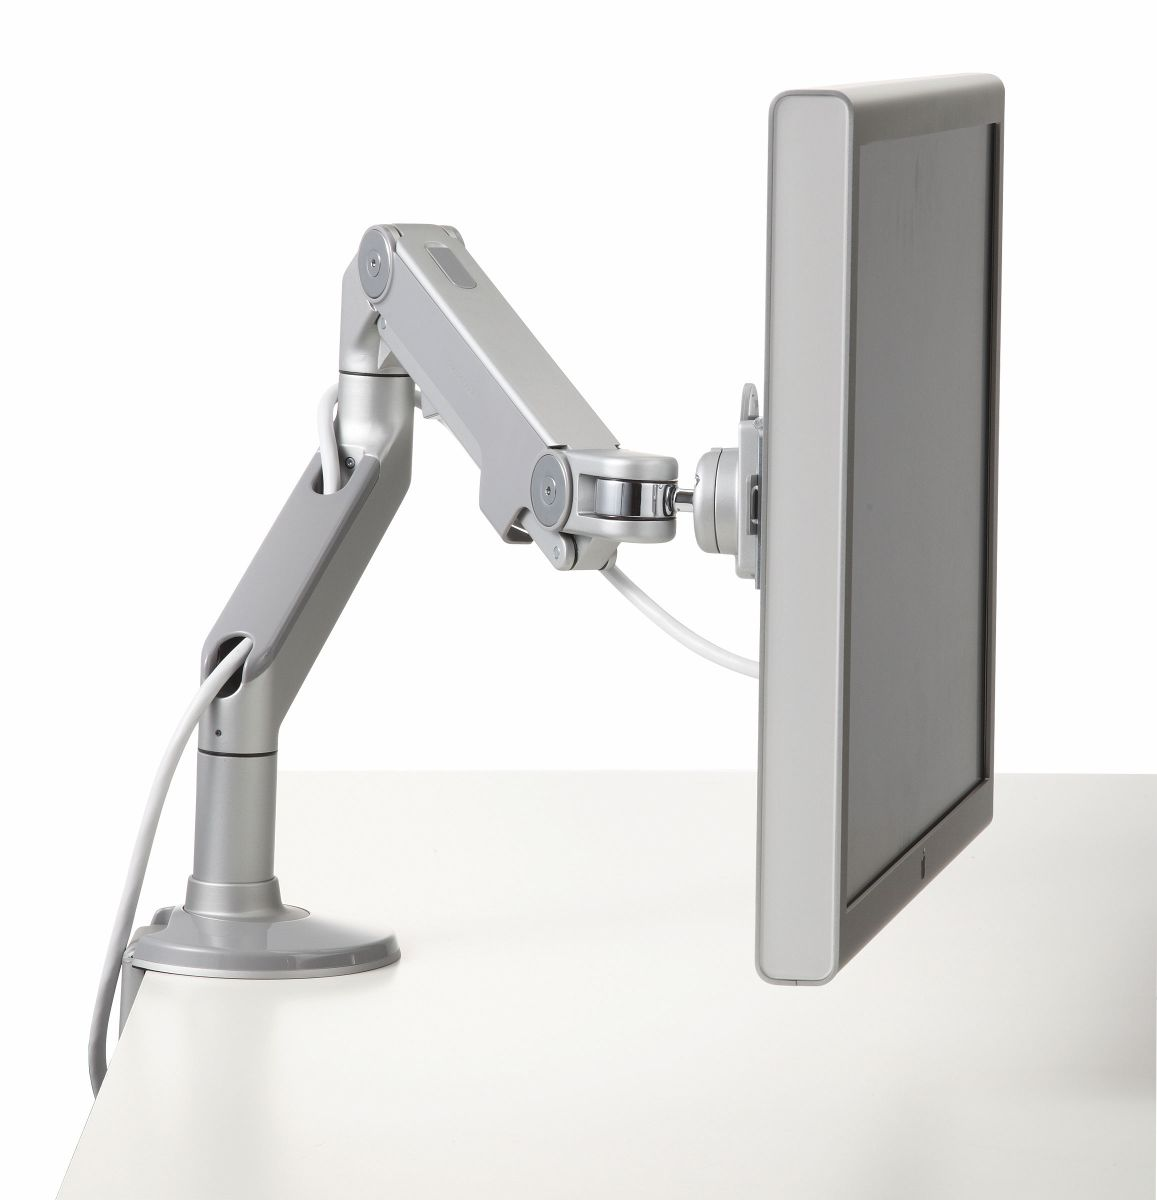 Light Holder M8 Silver 2400 Monitor Arm Upstart Officeupstart Office